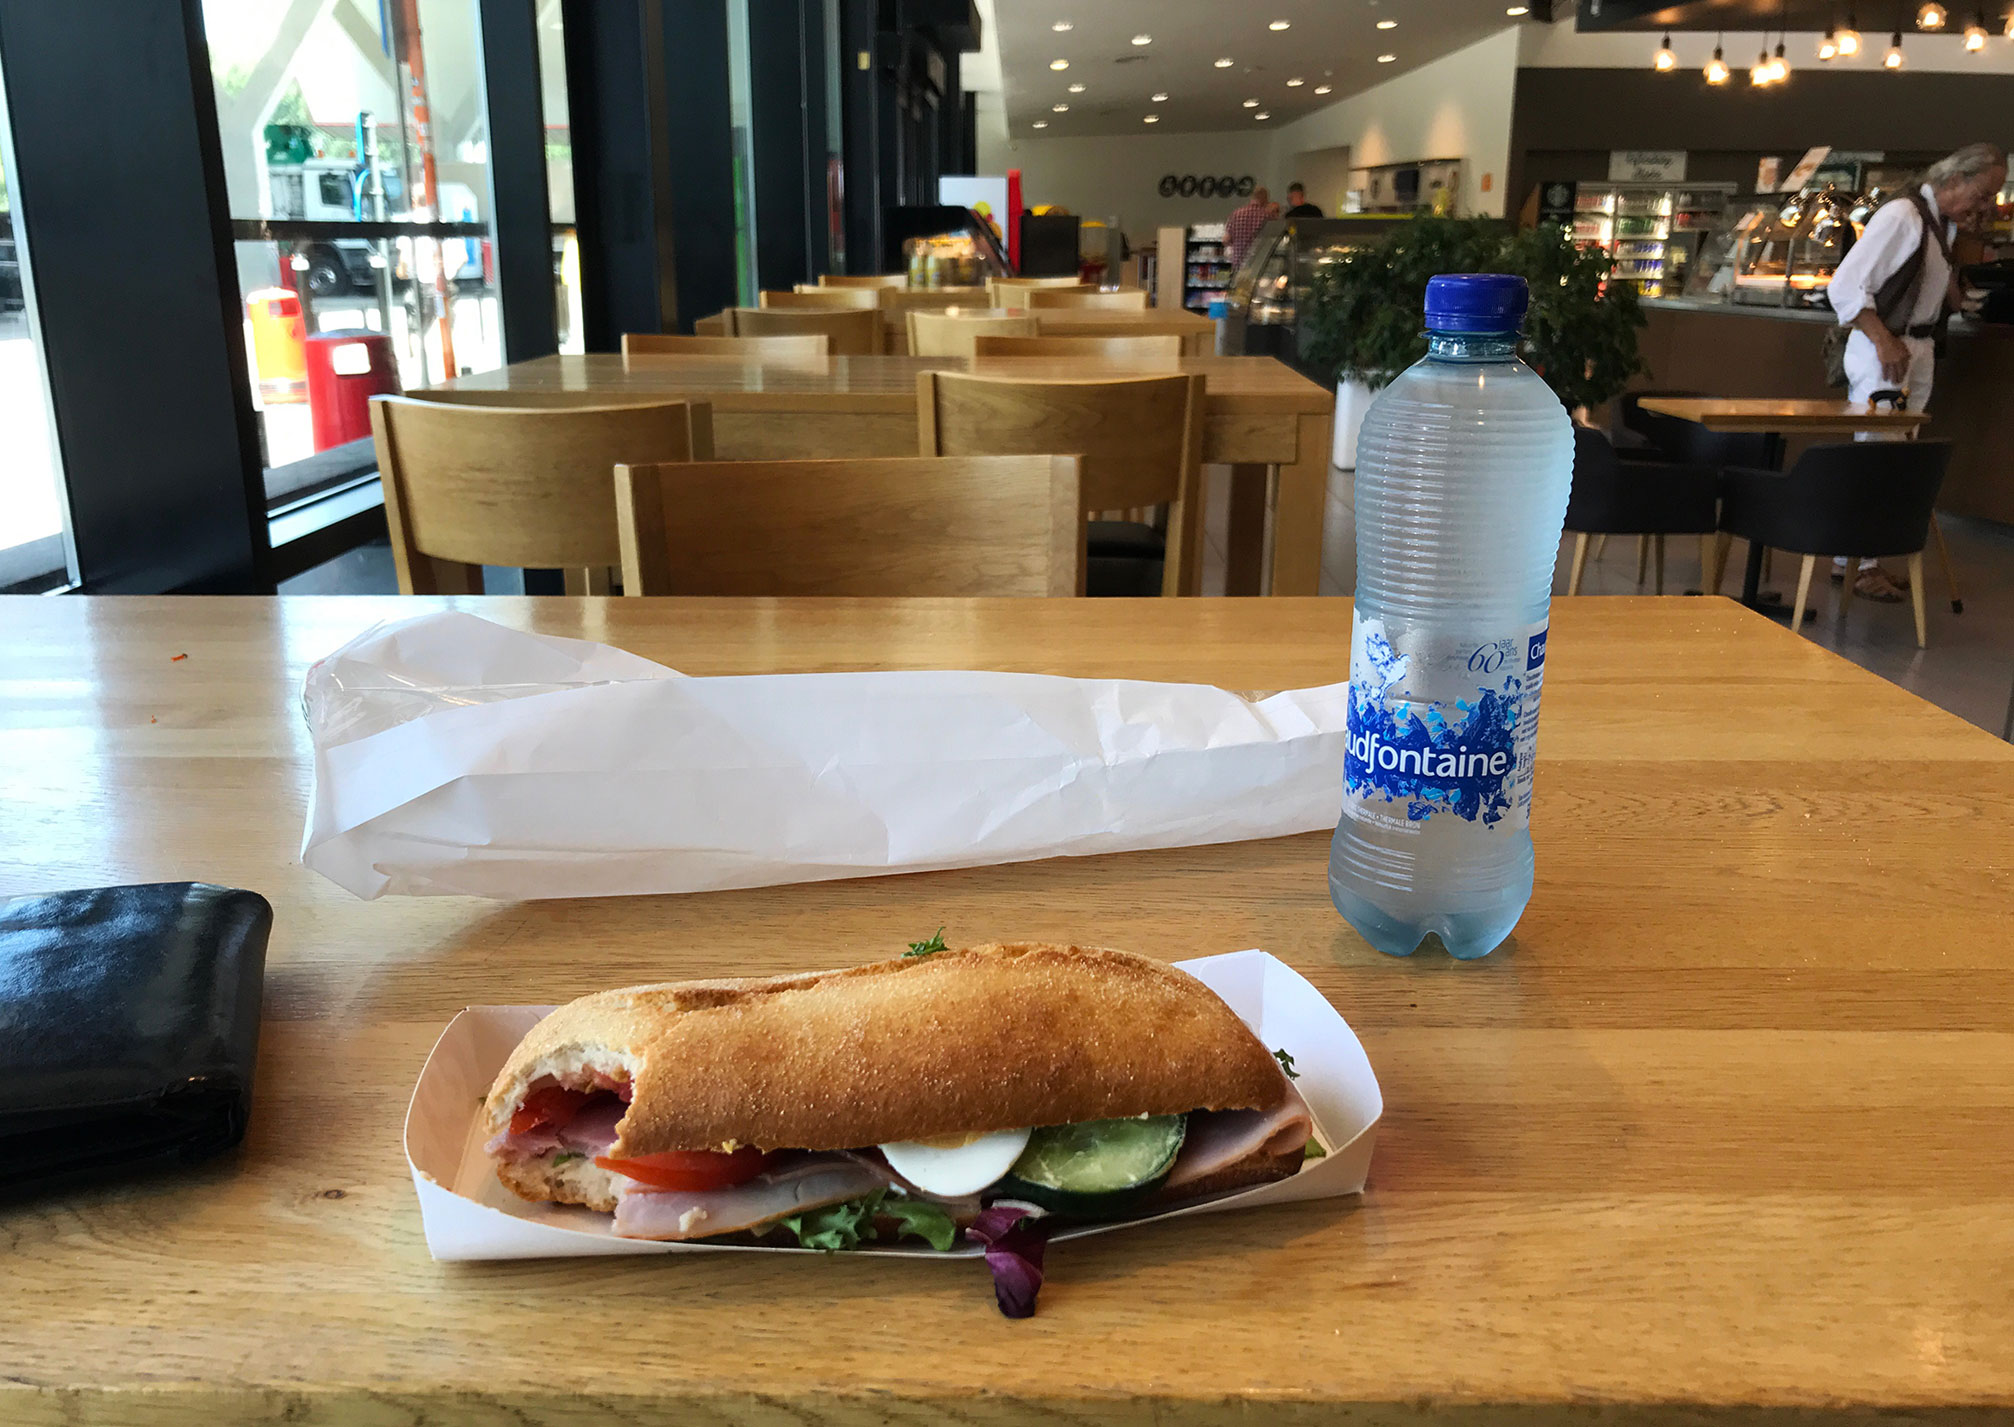 Going east: lunchtime in Belgium, along the A40